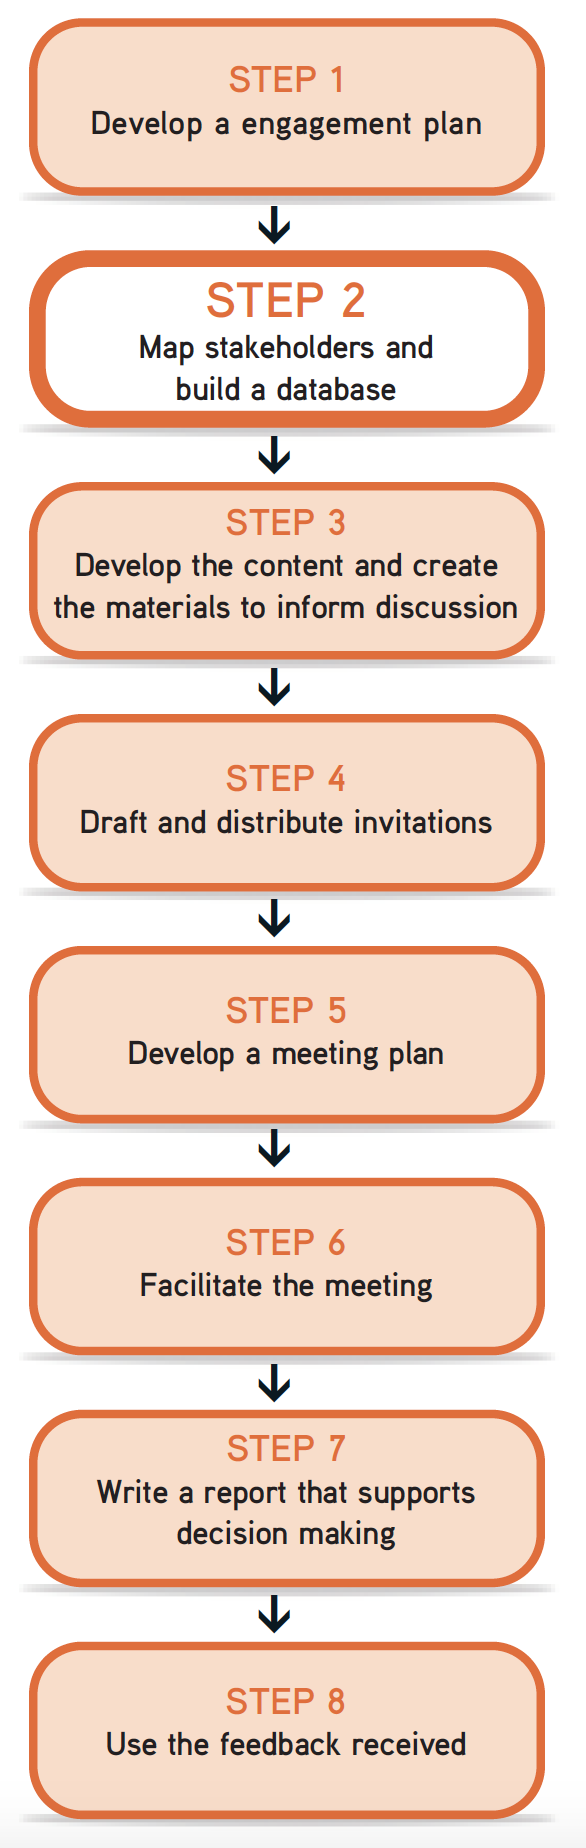 "Picture of steps flow chart, with Step 2 ""Map stakeholders and build a database"" highlighted."